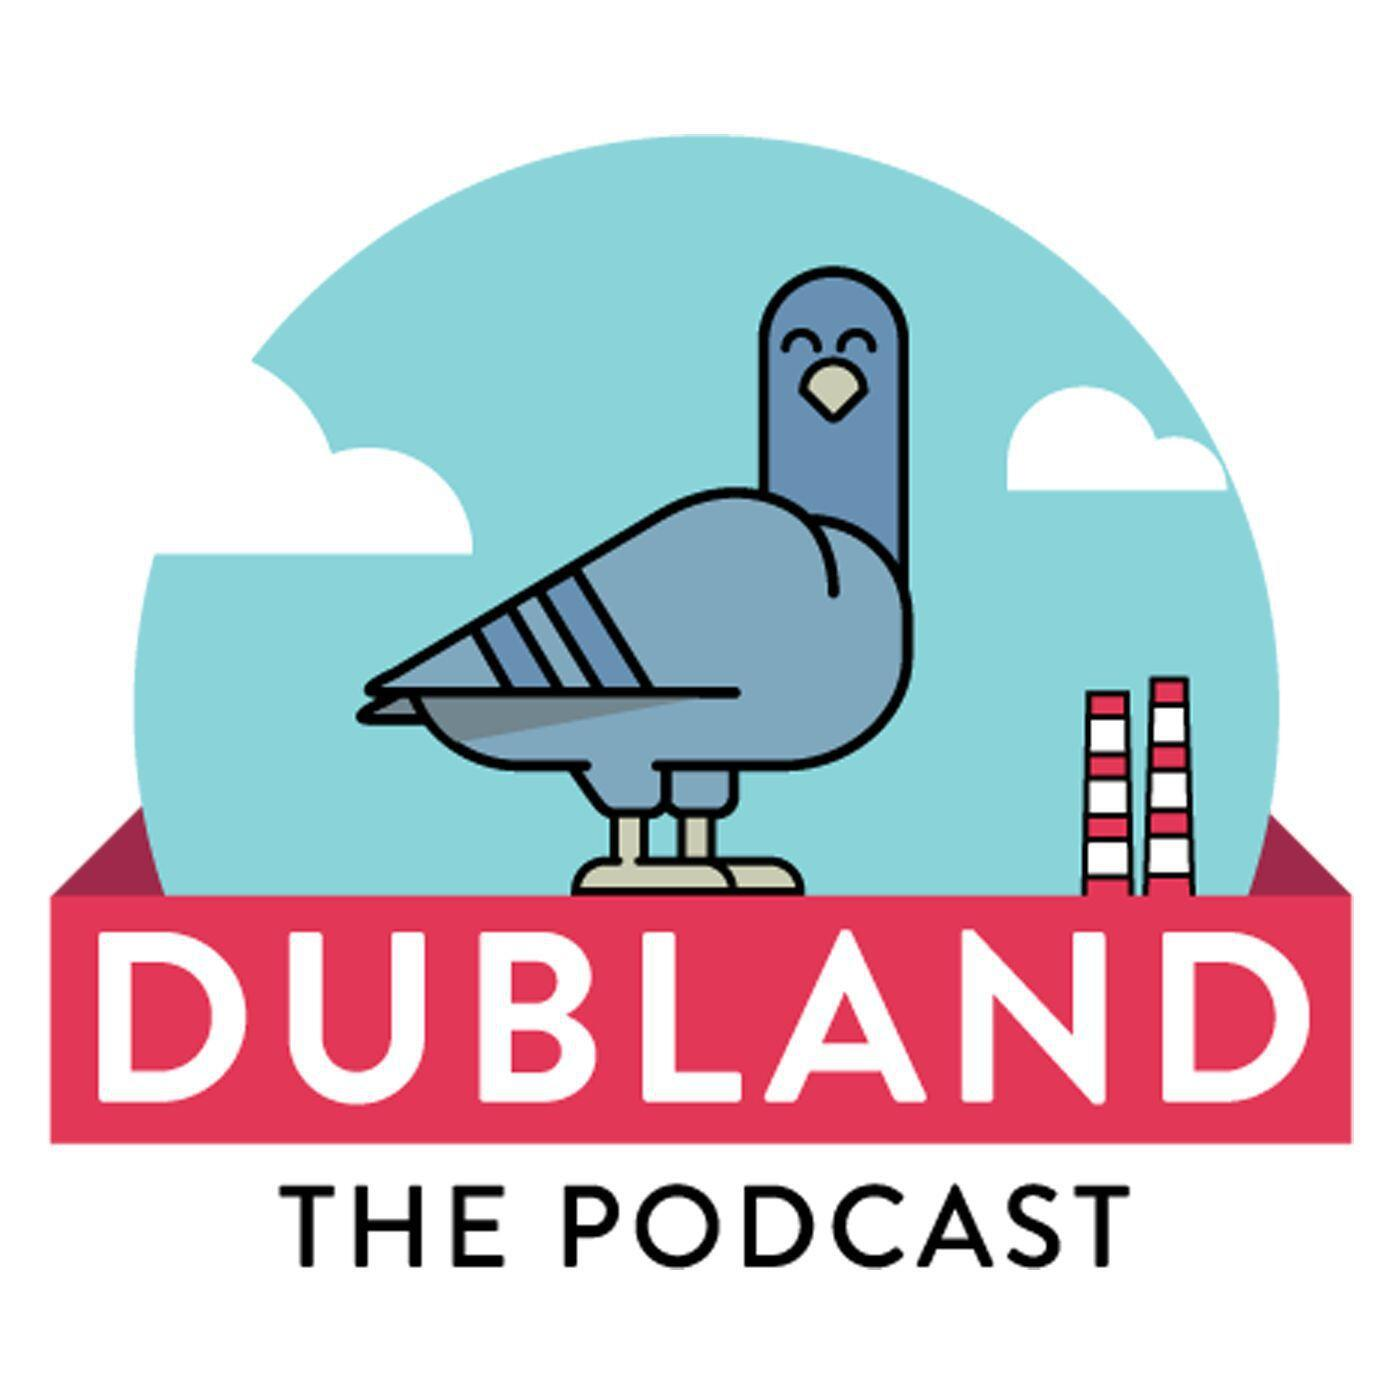 70 DUBLAND The Podcast